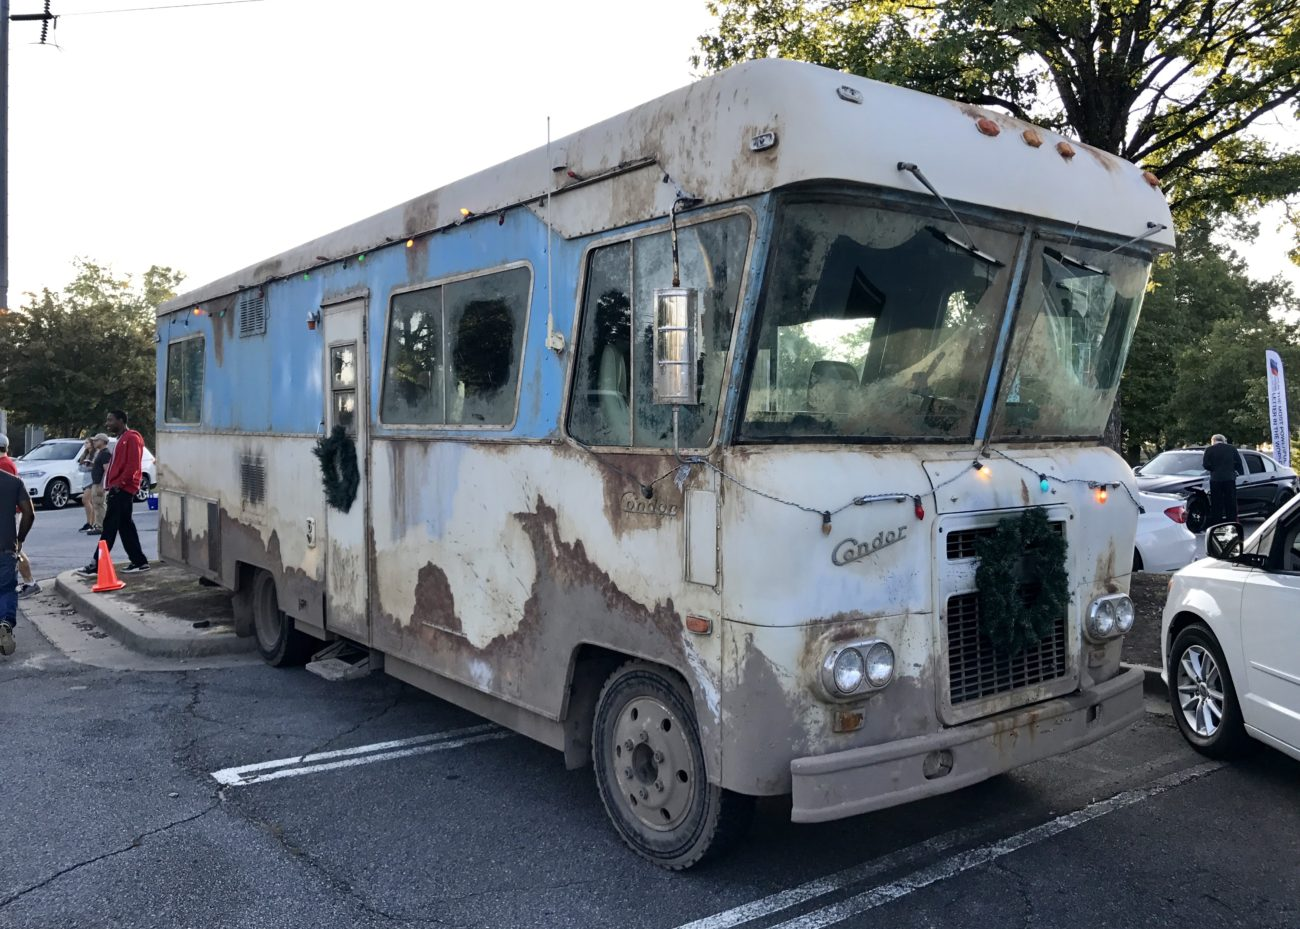 Cousin Eddie's 1972 Ford Condor RV from the Nation Lampoons Christmas Vacation